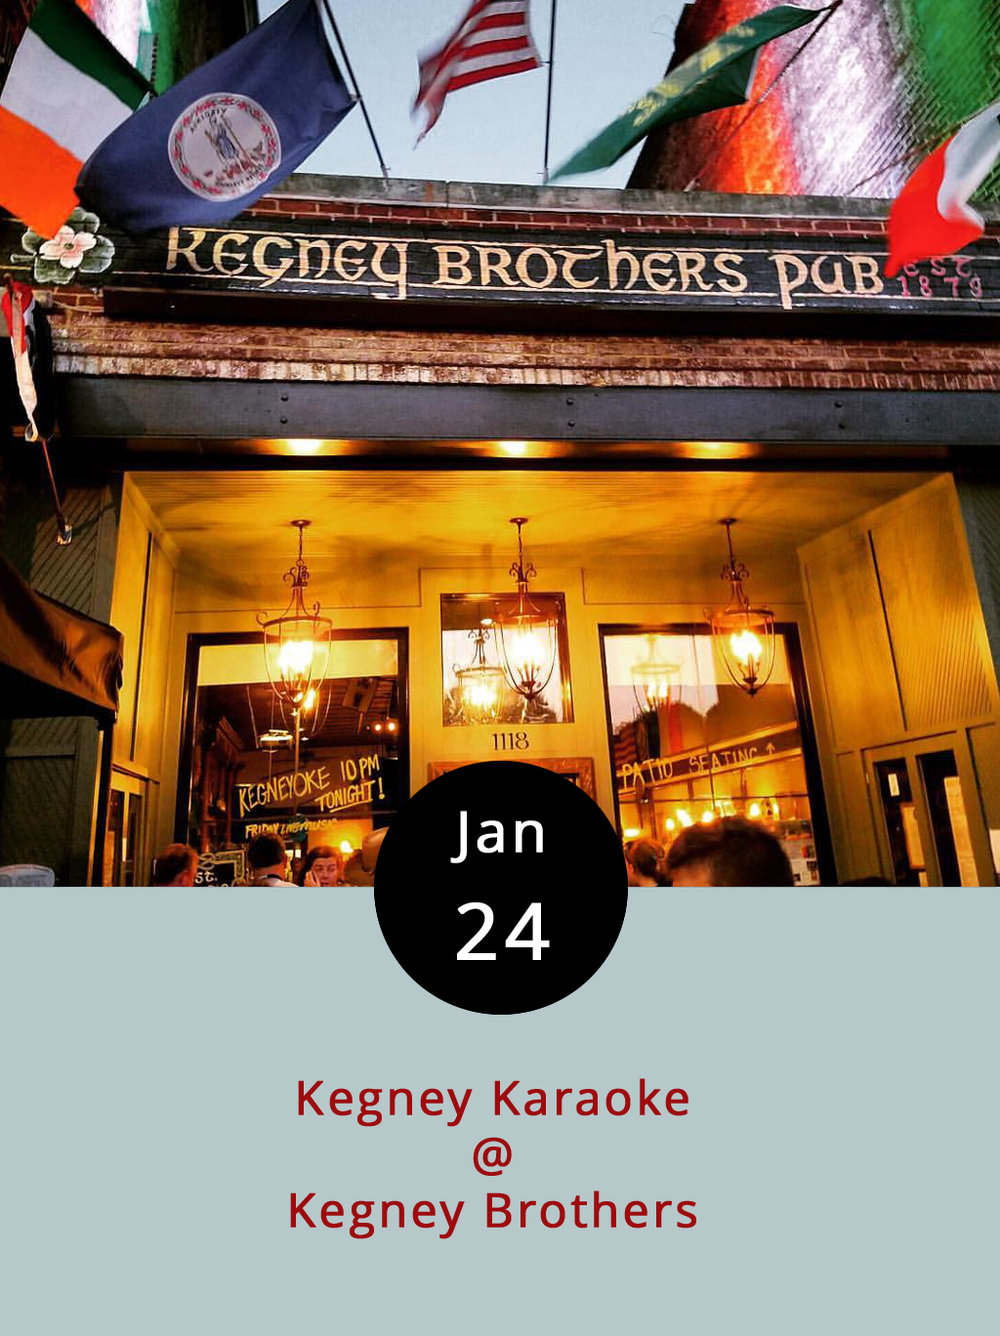 If it's Tuesday, that means karaoke night at Kegney Brothers. And, if it's Kegney Brothers (and it is), then there's an excellent selection of beer on tap, an impressive variety of Irish whiskeys on the top shelf, and hearty pub fare on the menu. The singing, which is often hosted by our pal Hope Irons, begins at 10 p.m. Kegney Brothers is located at 1118 Main St.; call (434) 616-6691 or click    here    for more info.